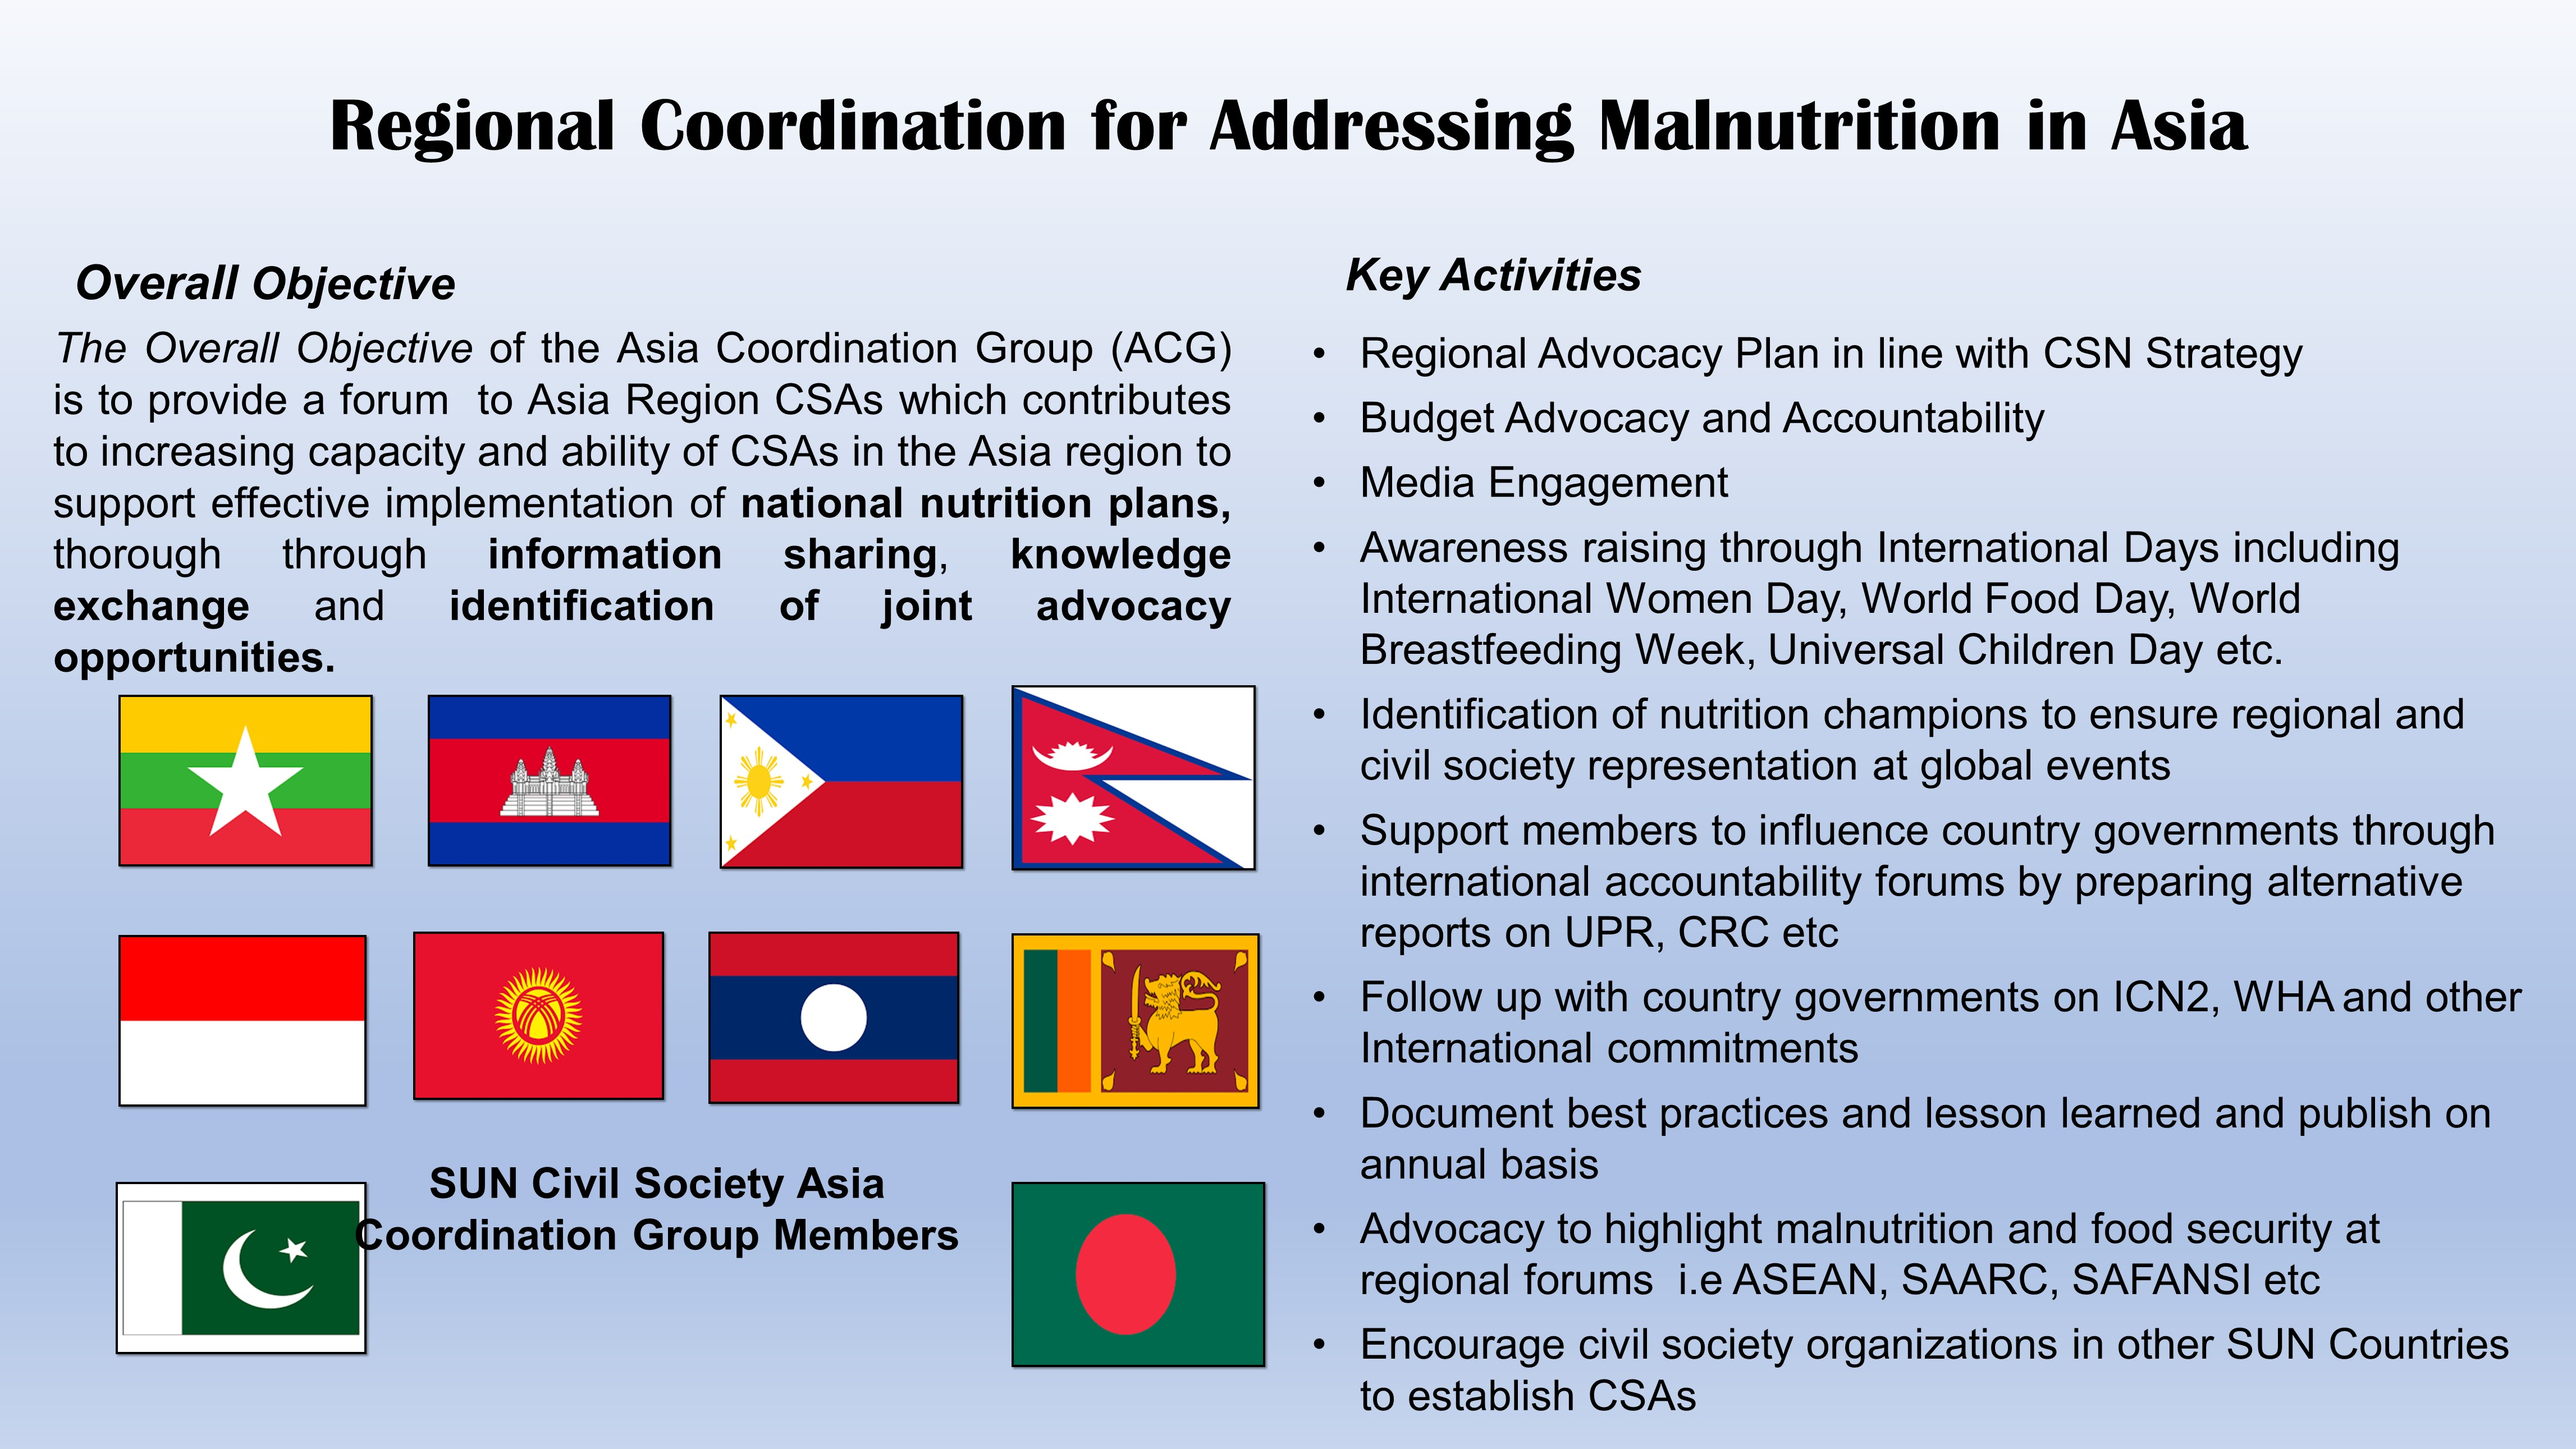 Regional Coordination for Addressing Malnutrition in Asia